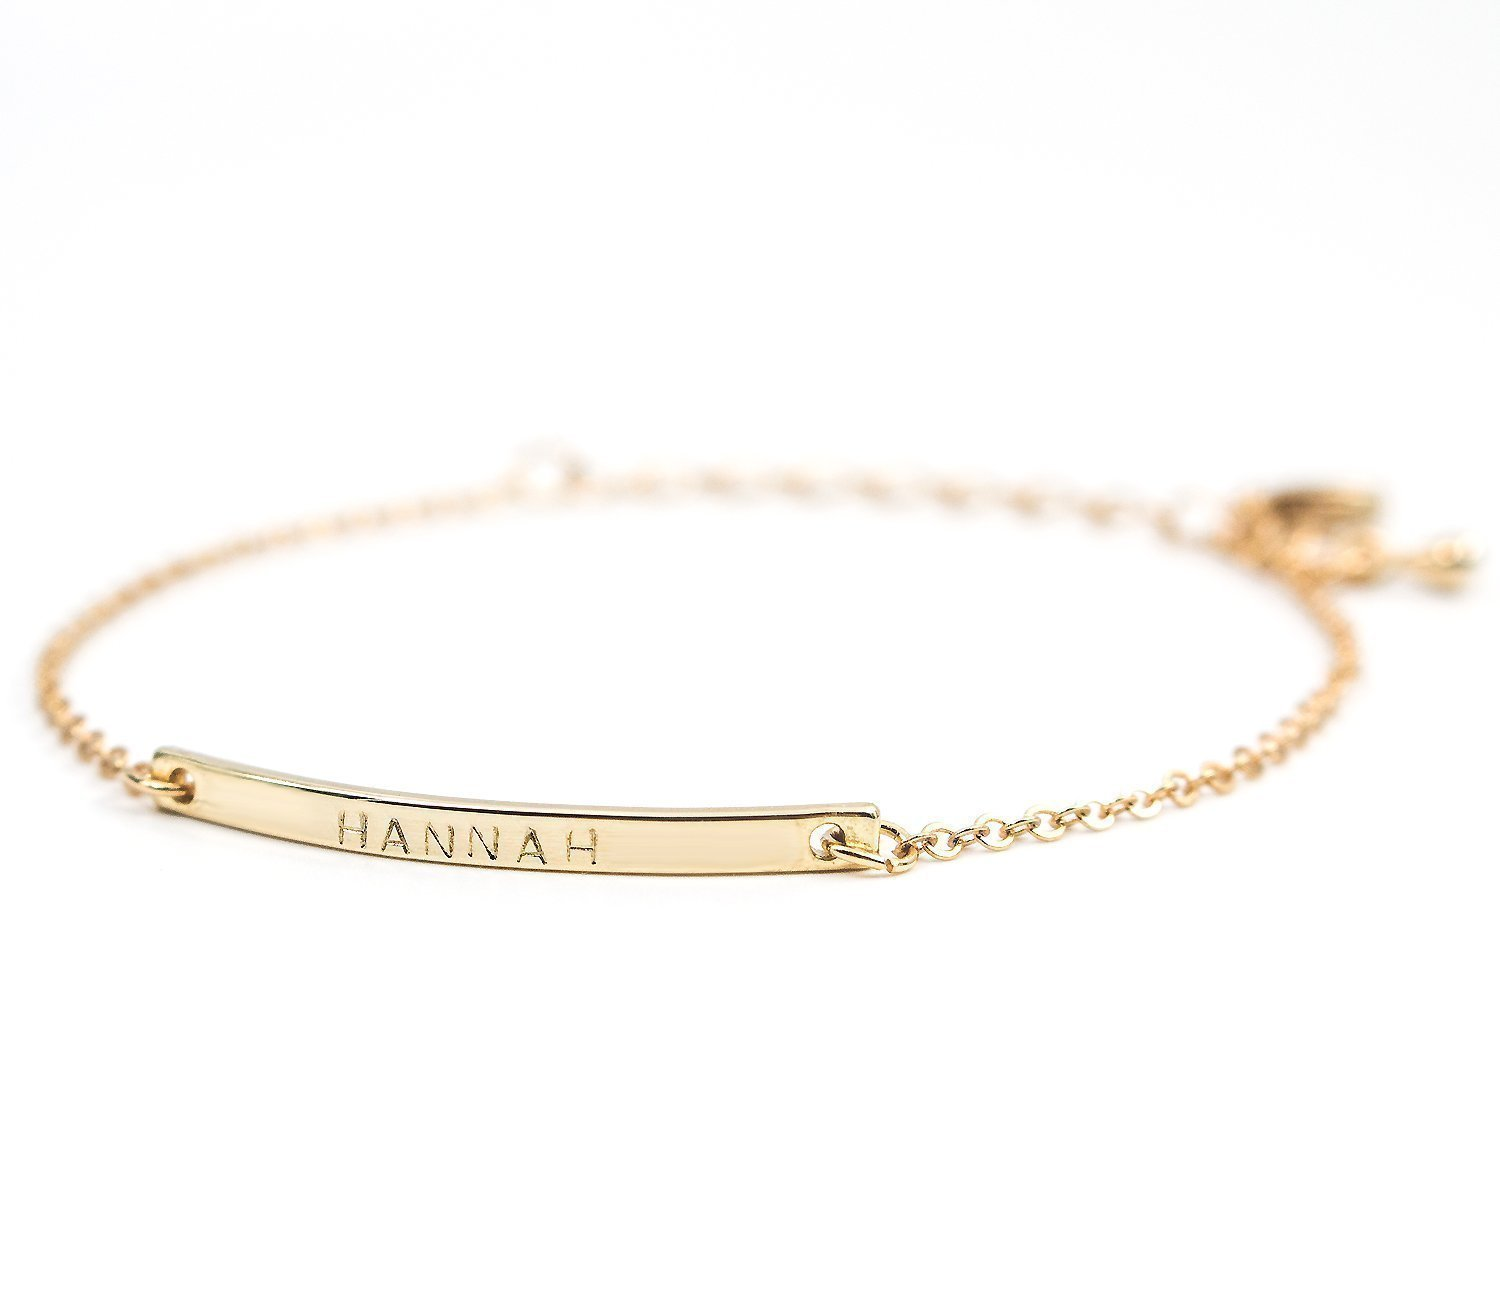 16K Gold Your Name Bar Bracelet - Personalized Gold Plated bar Delicate Hand Stamp bridesmaid Wedding Graduation Gift